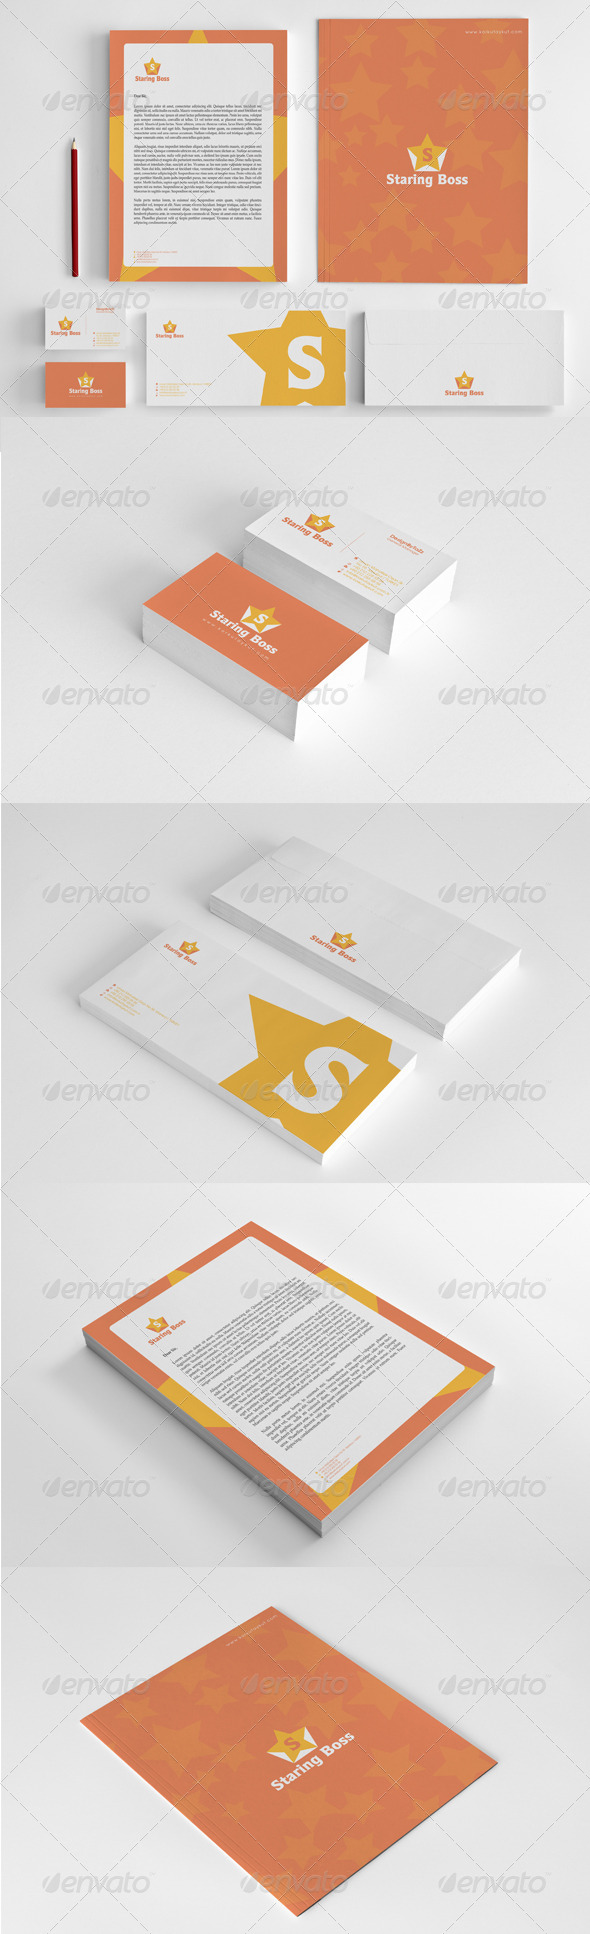 GraphicRiver Staring Boss Corporate Identity Package 5964488